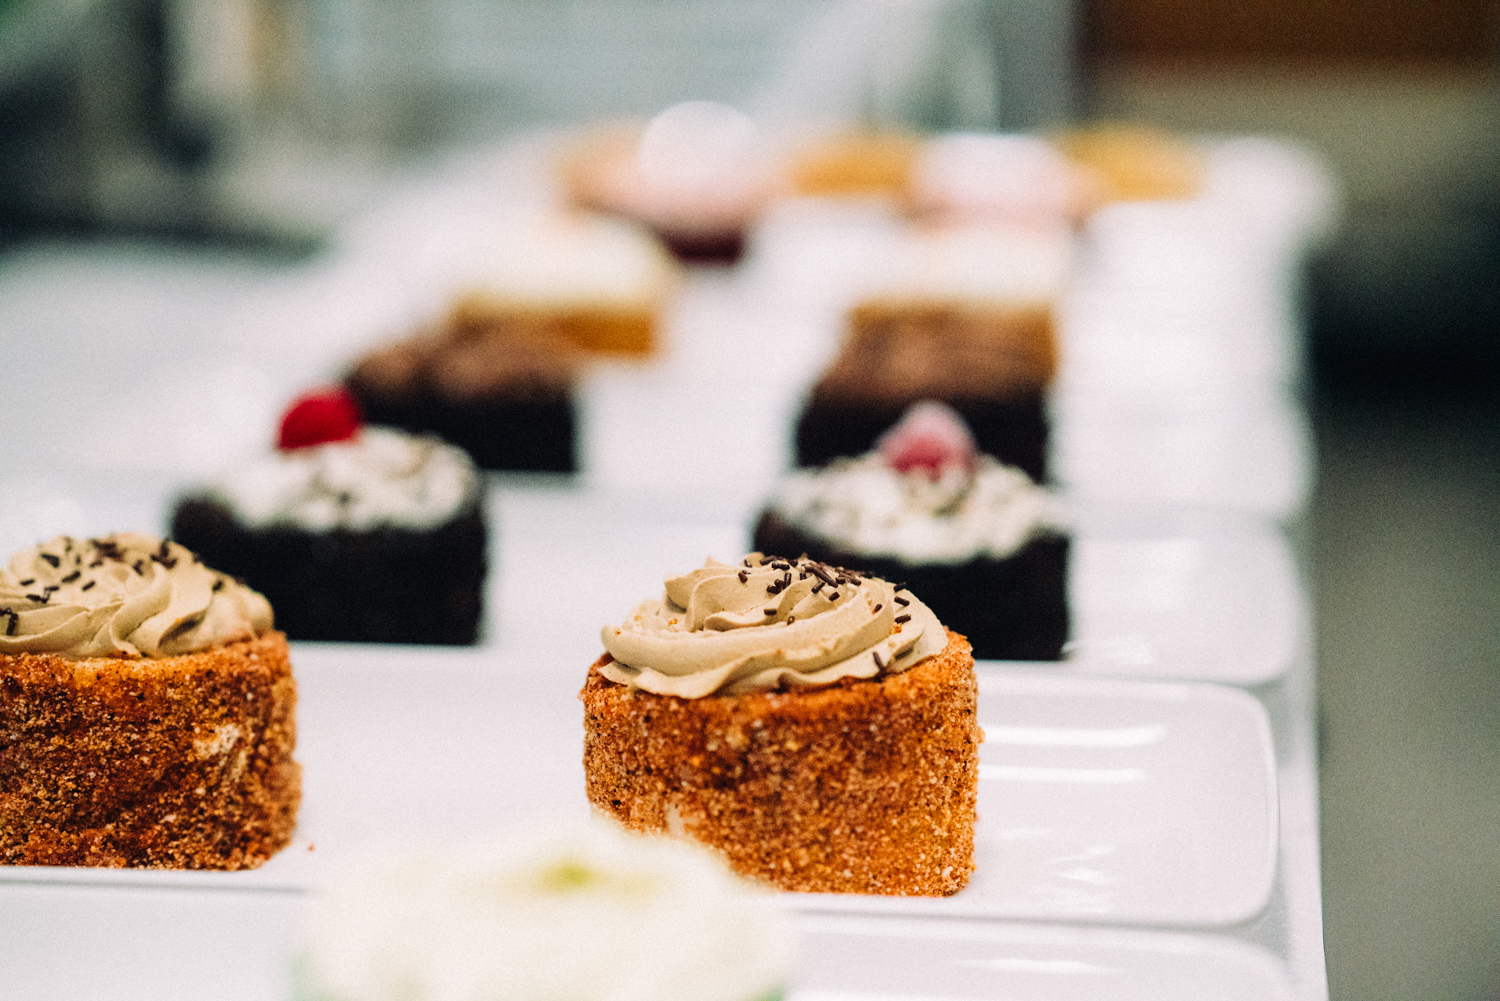 A row of finely made deserts are showcased at Botte Chai Bar in Saskatoon Saskatchewan